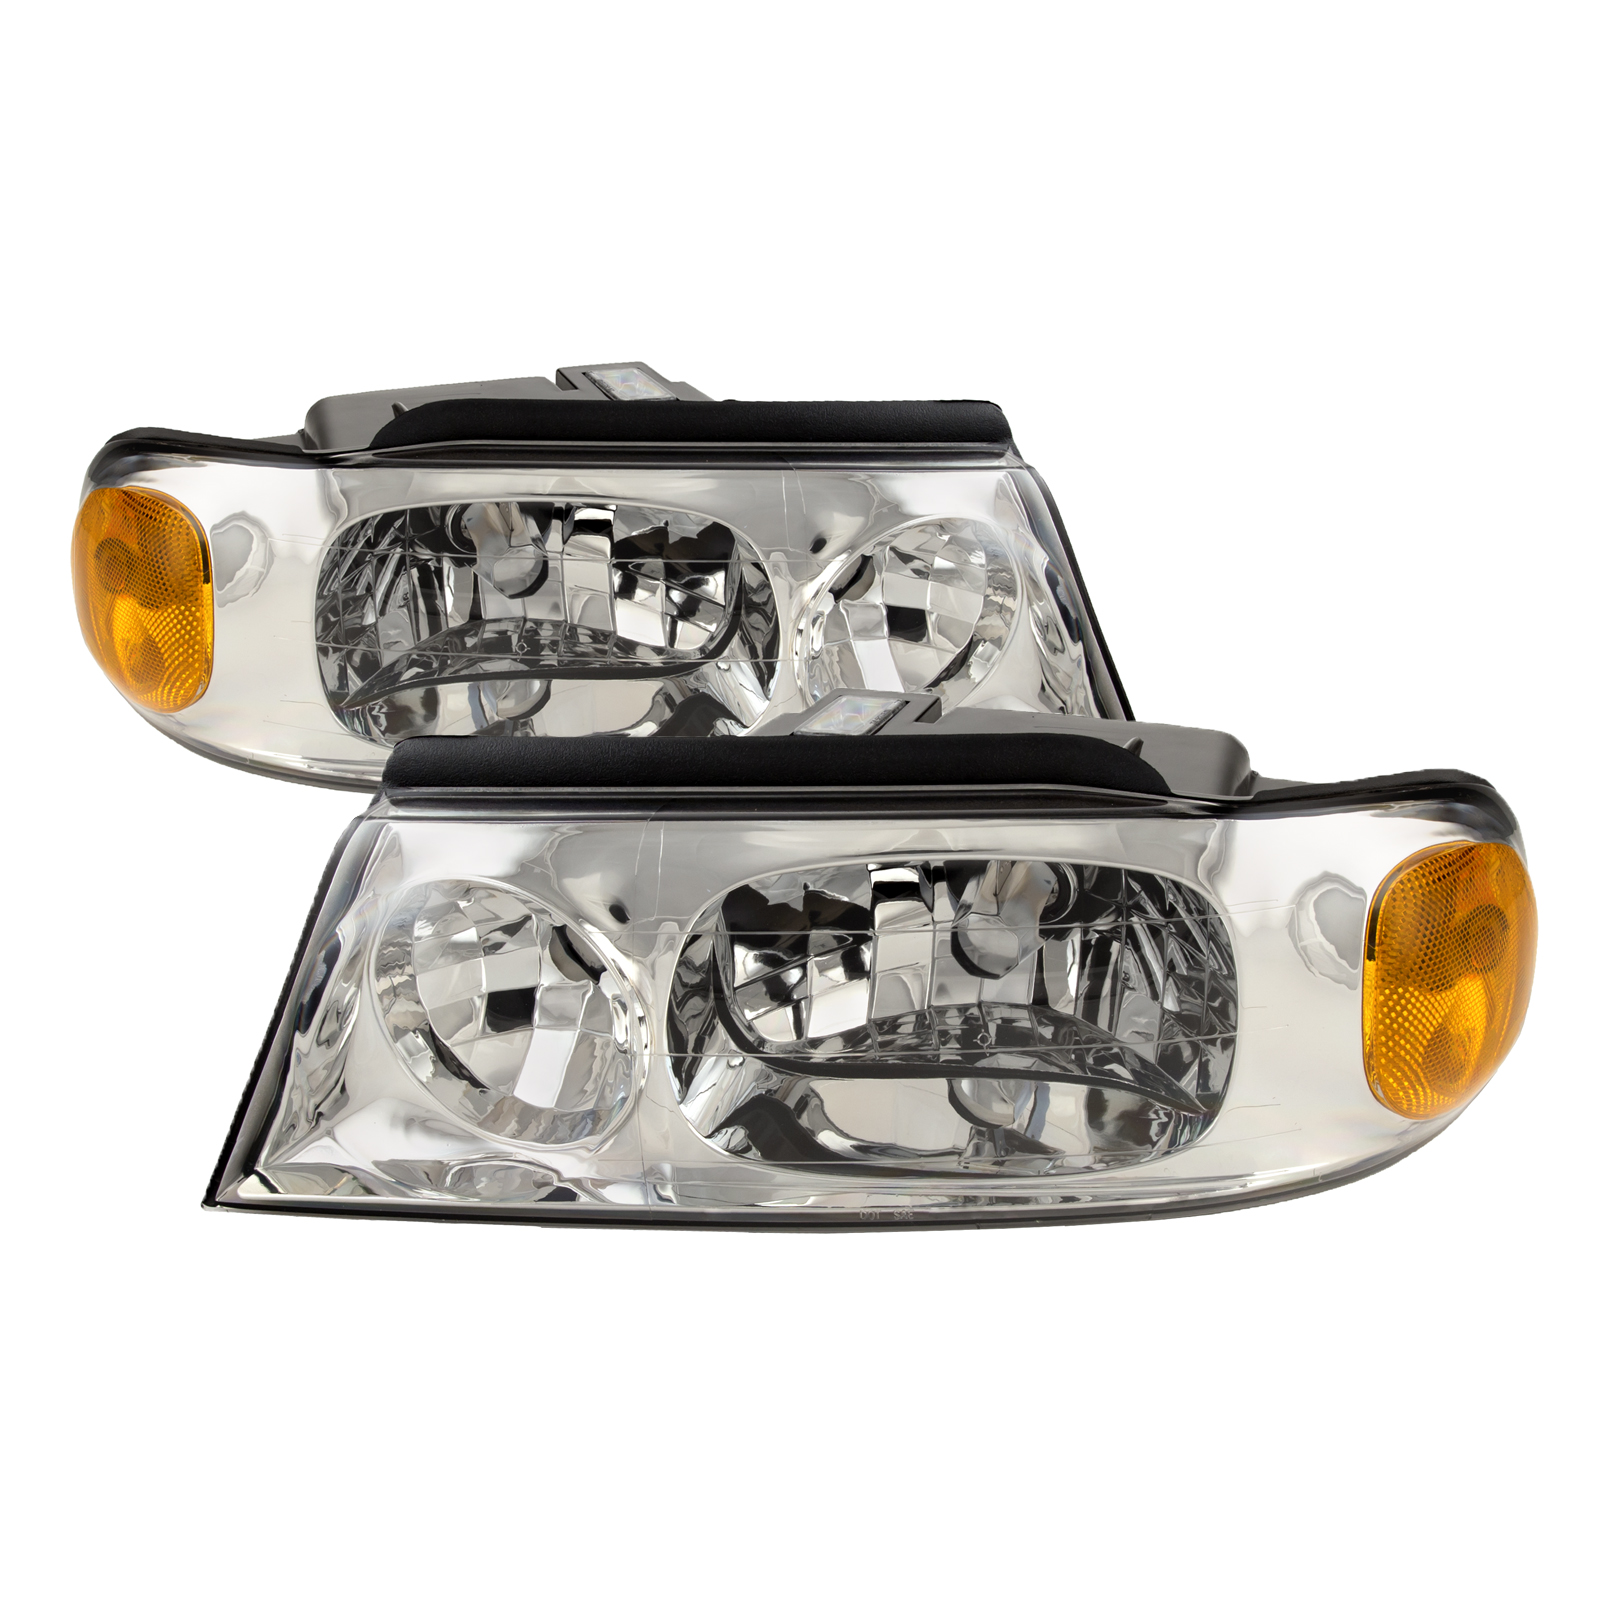 Left /& Right Damon Ultrasport 2002-2004 RV Motorhome Pair Replacement Front Headlights with Bulbs